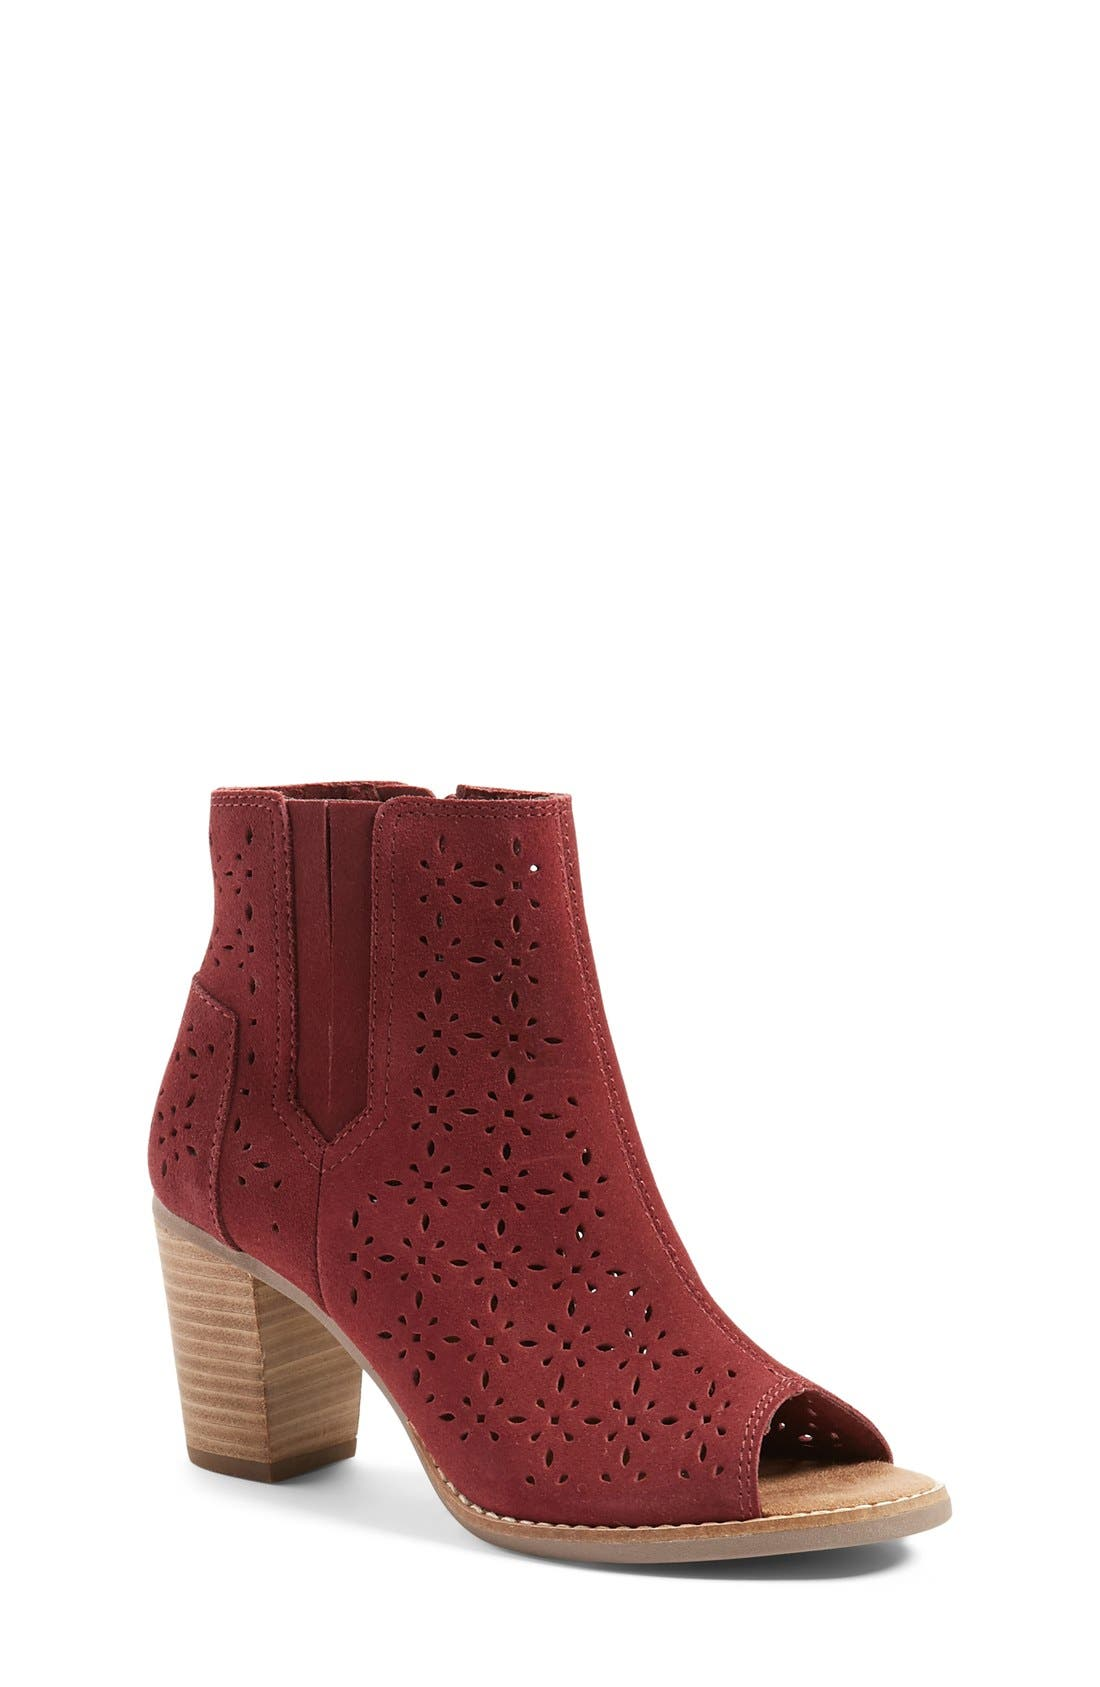 Alternate Image 1 Selected - TOMS 'Majorca' Peep Toe Bootie (Women)